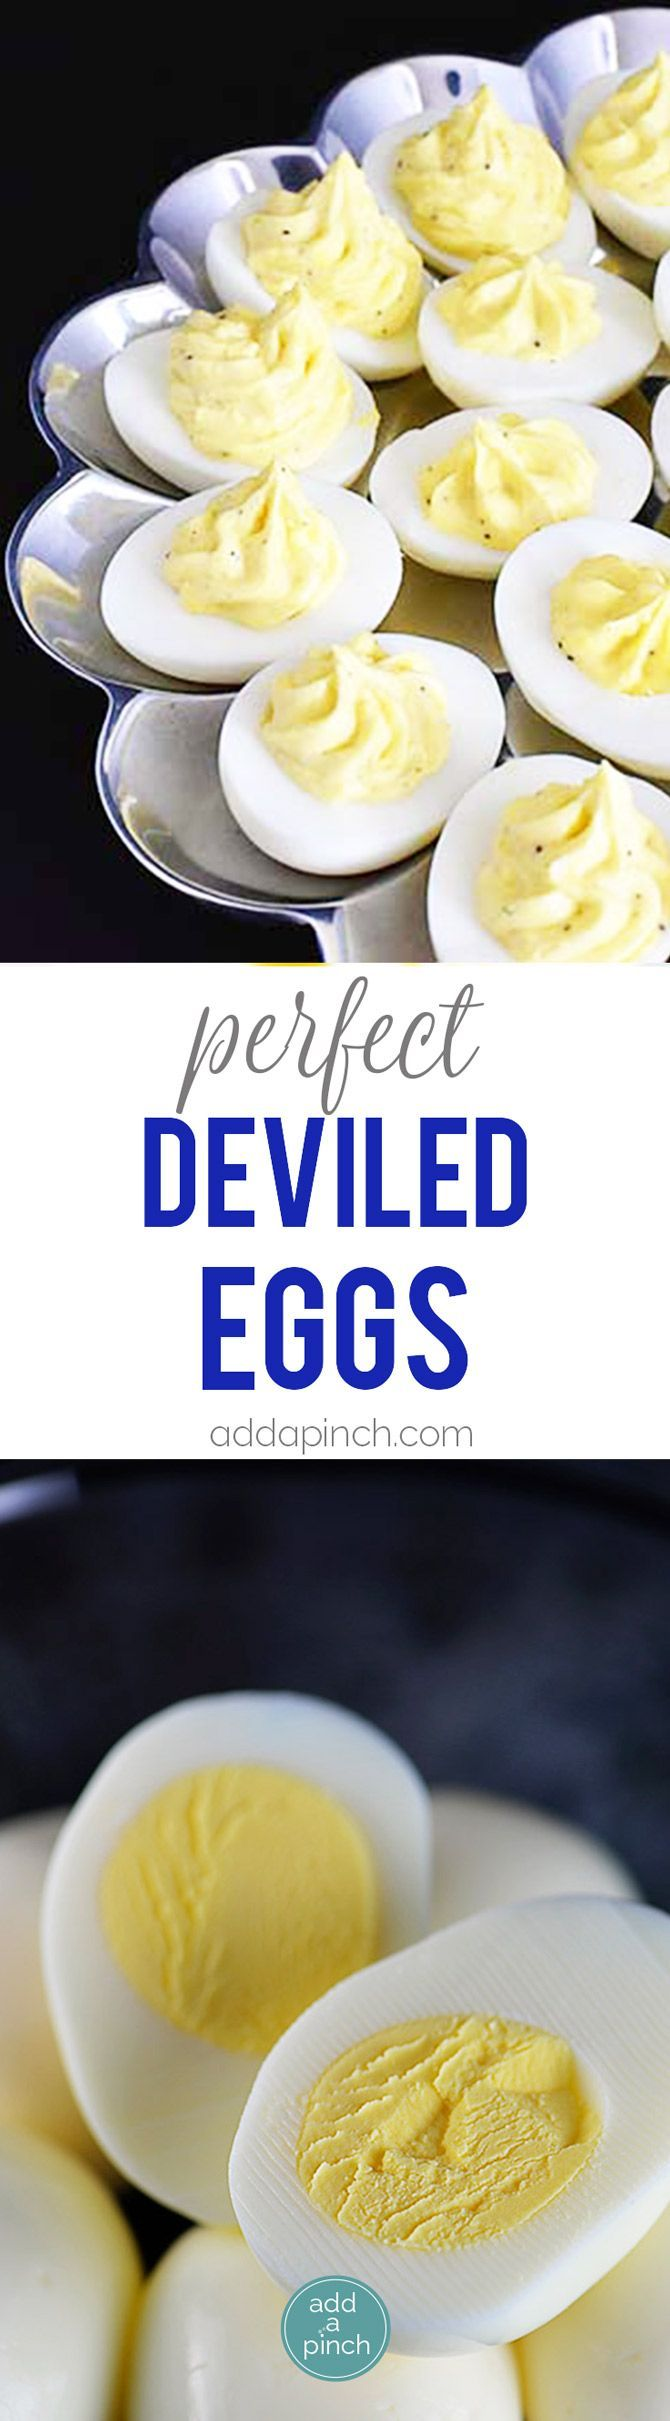 Perfect Deviled Eggs - the perfect appetizer or side dish for family meals, parties, showers, and other events. : addapinch